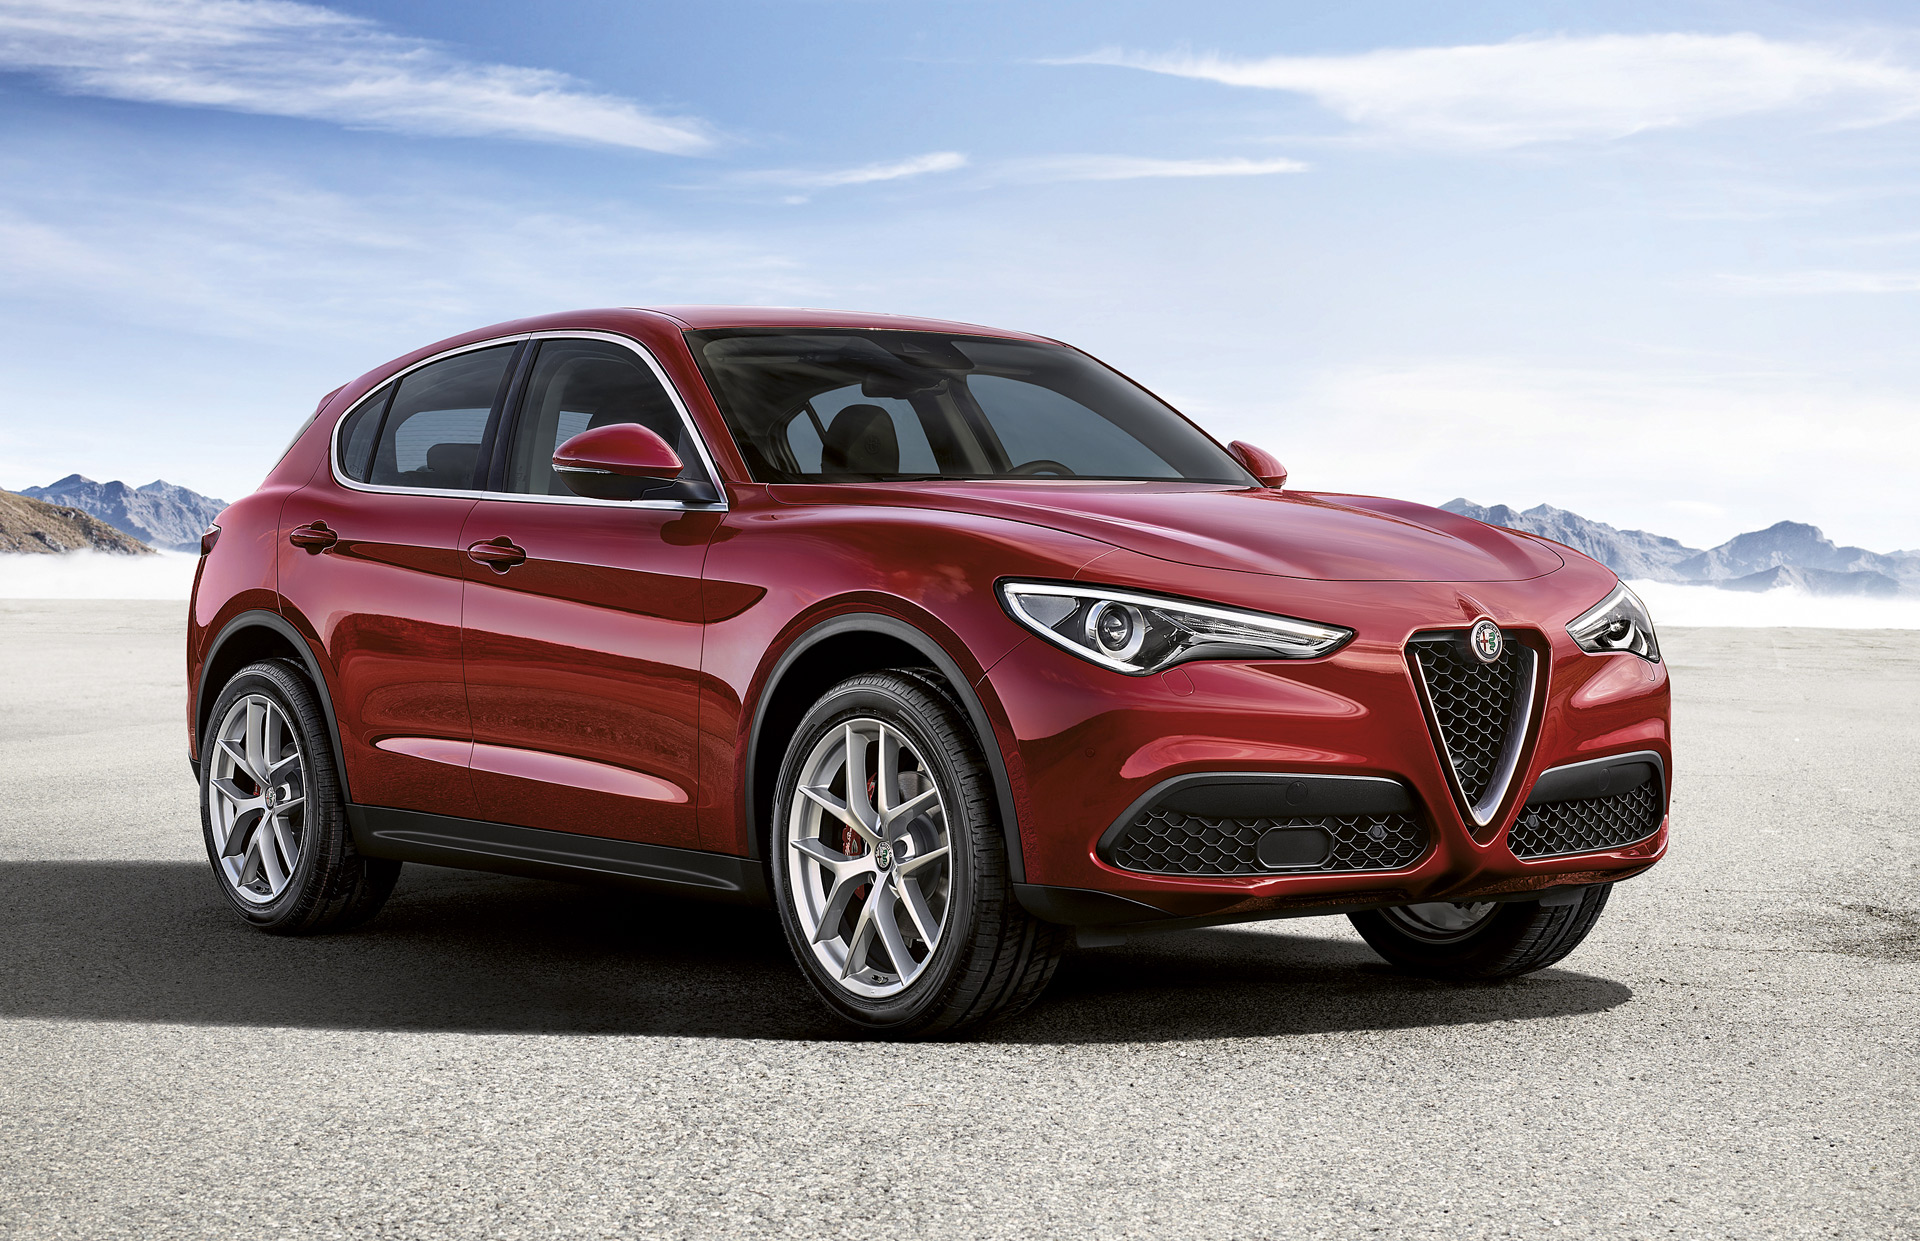 1110385 2018 Alfa Romeo Stelvio Priced Above Direct Rivals But Loaded With Features on saturn roof rack